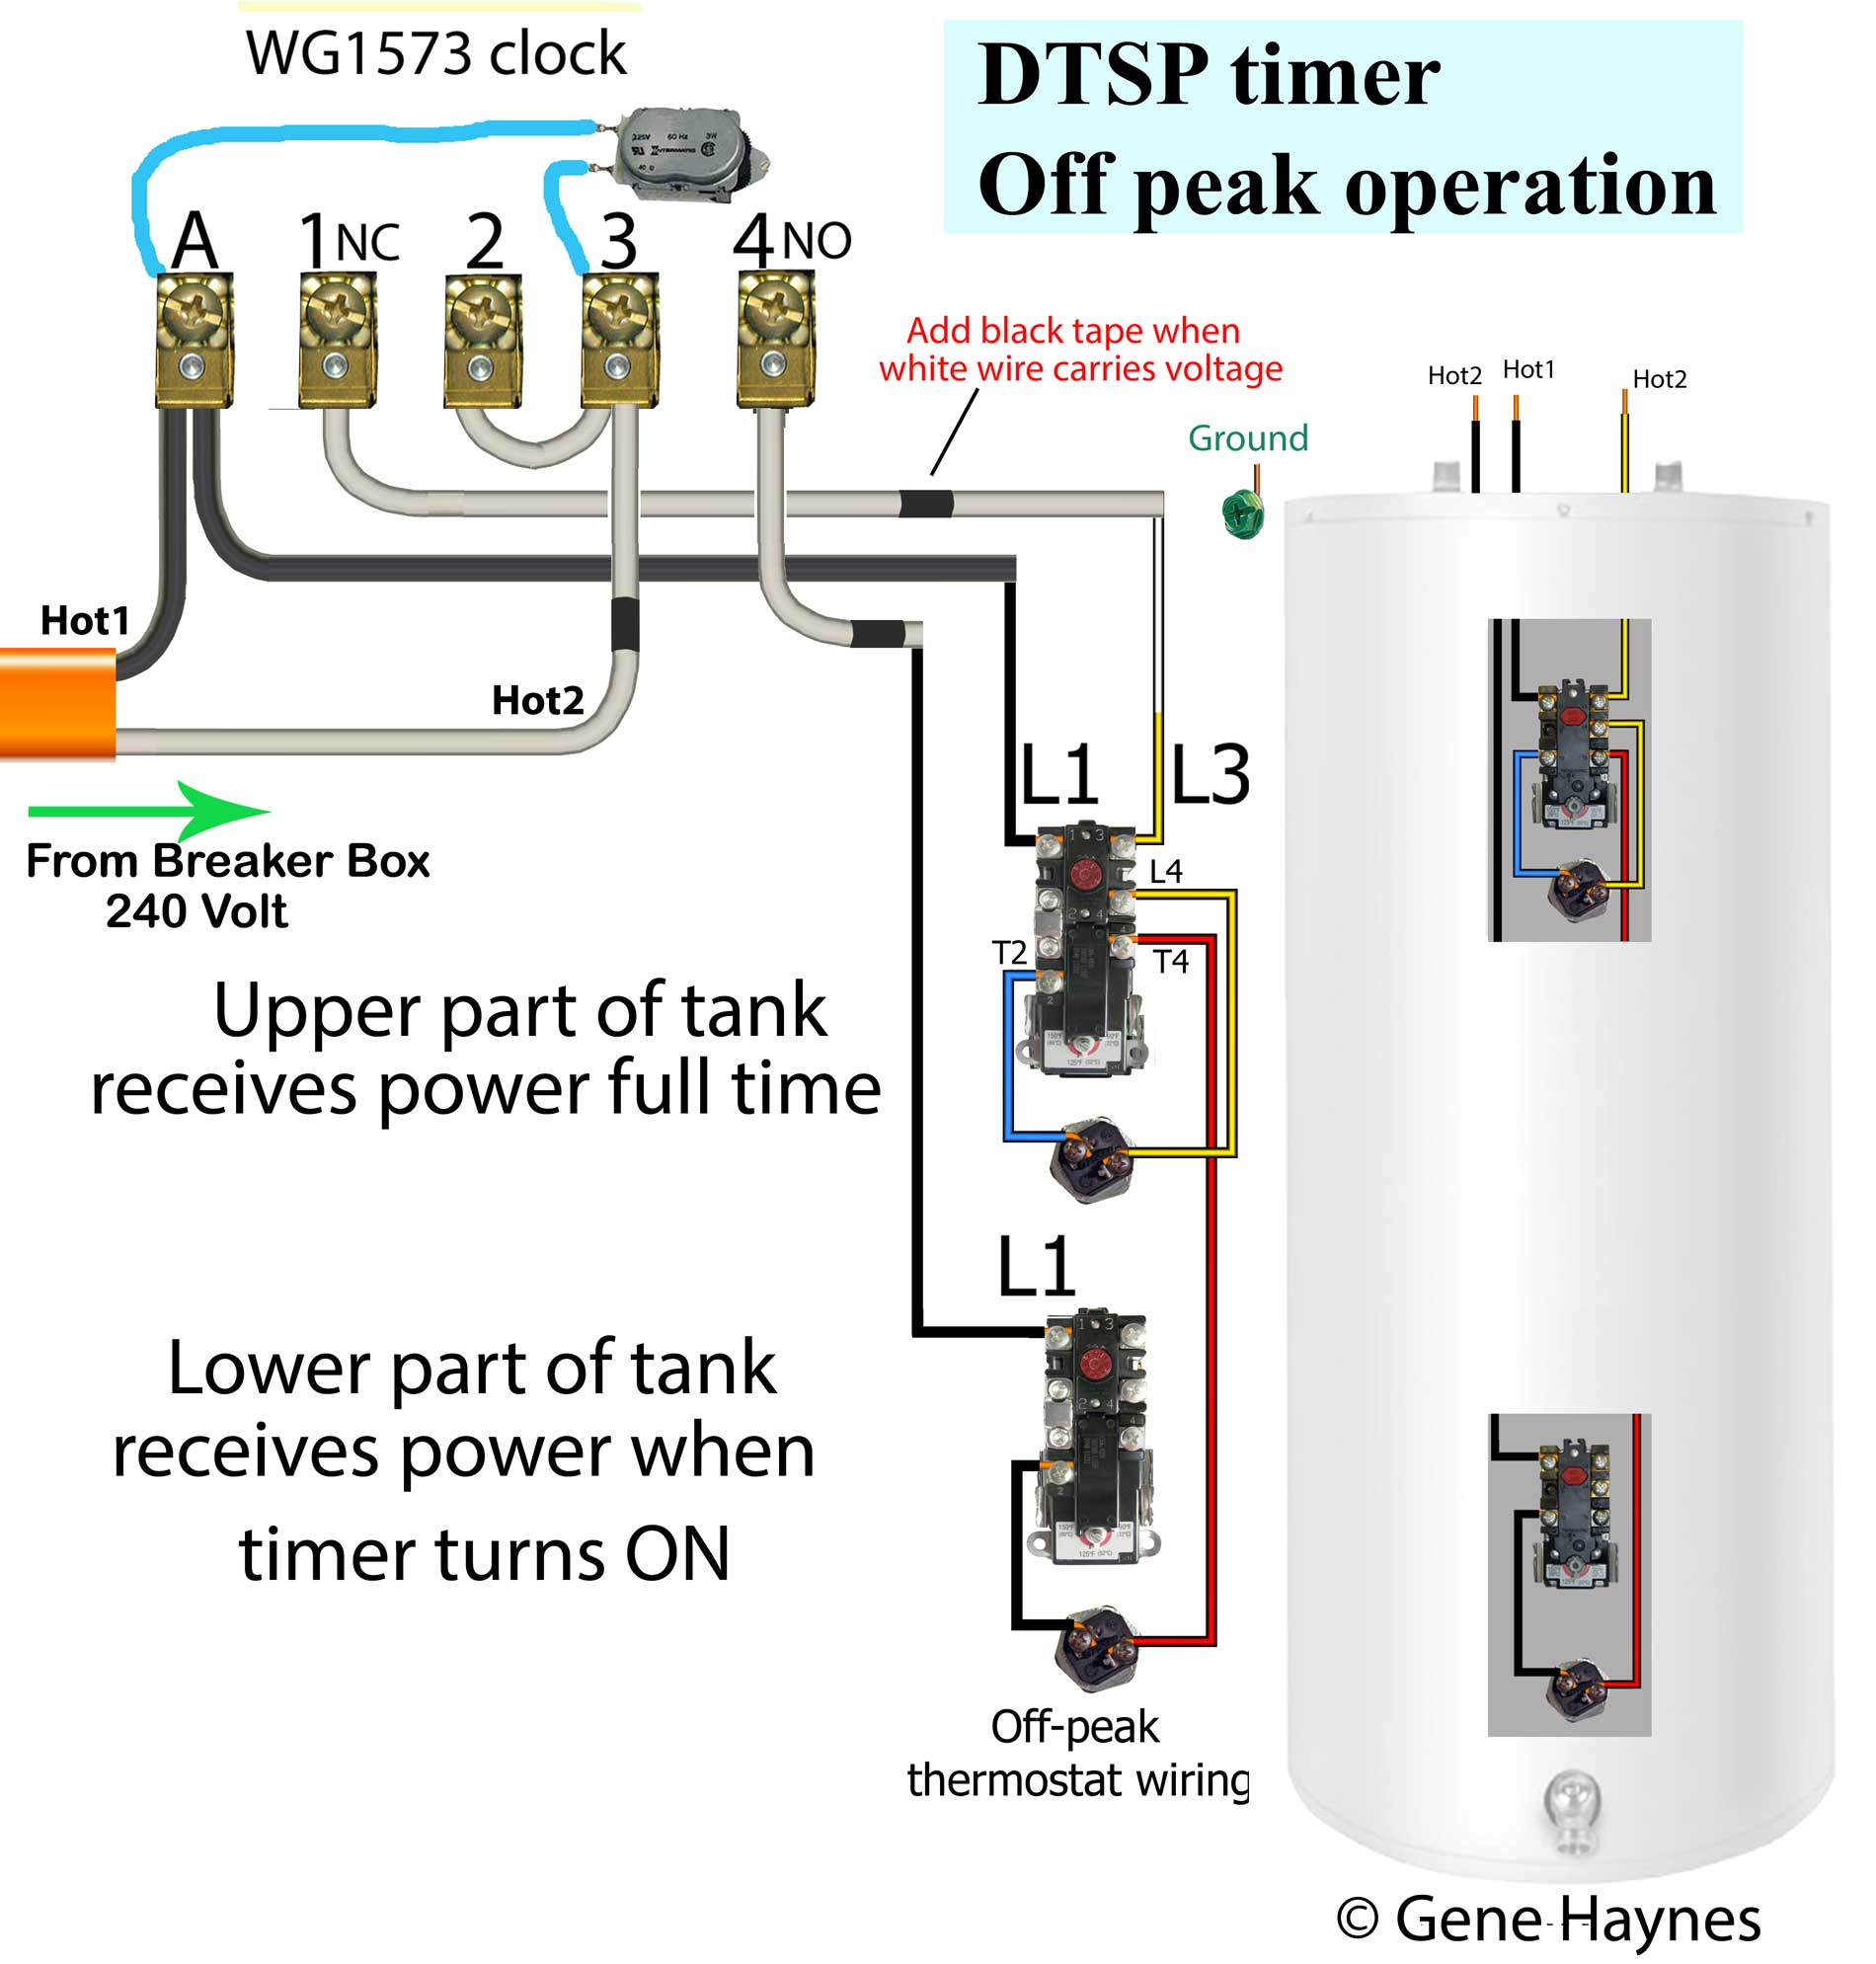 Timer Off Wiring Diagram Schematic 2019 On Delay How To Wire Peak Water Heater Thermostats Rh Waterheatertimer Org